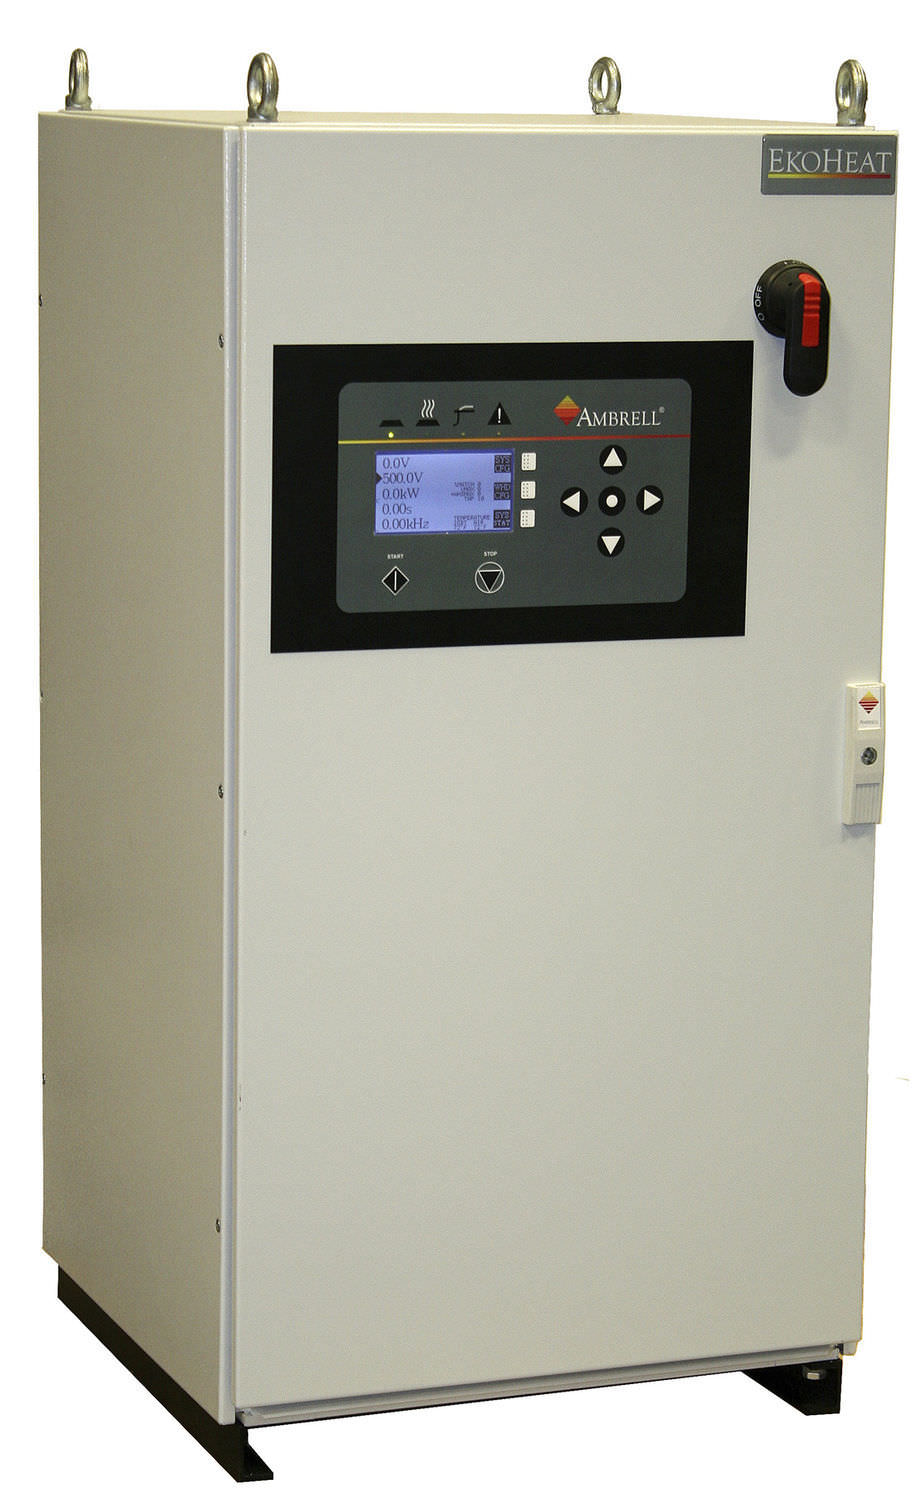 EKOHEAT 100/30 Heat treatment induction heater 100 kW, 15 – 40 kHz